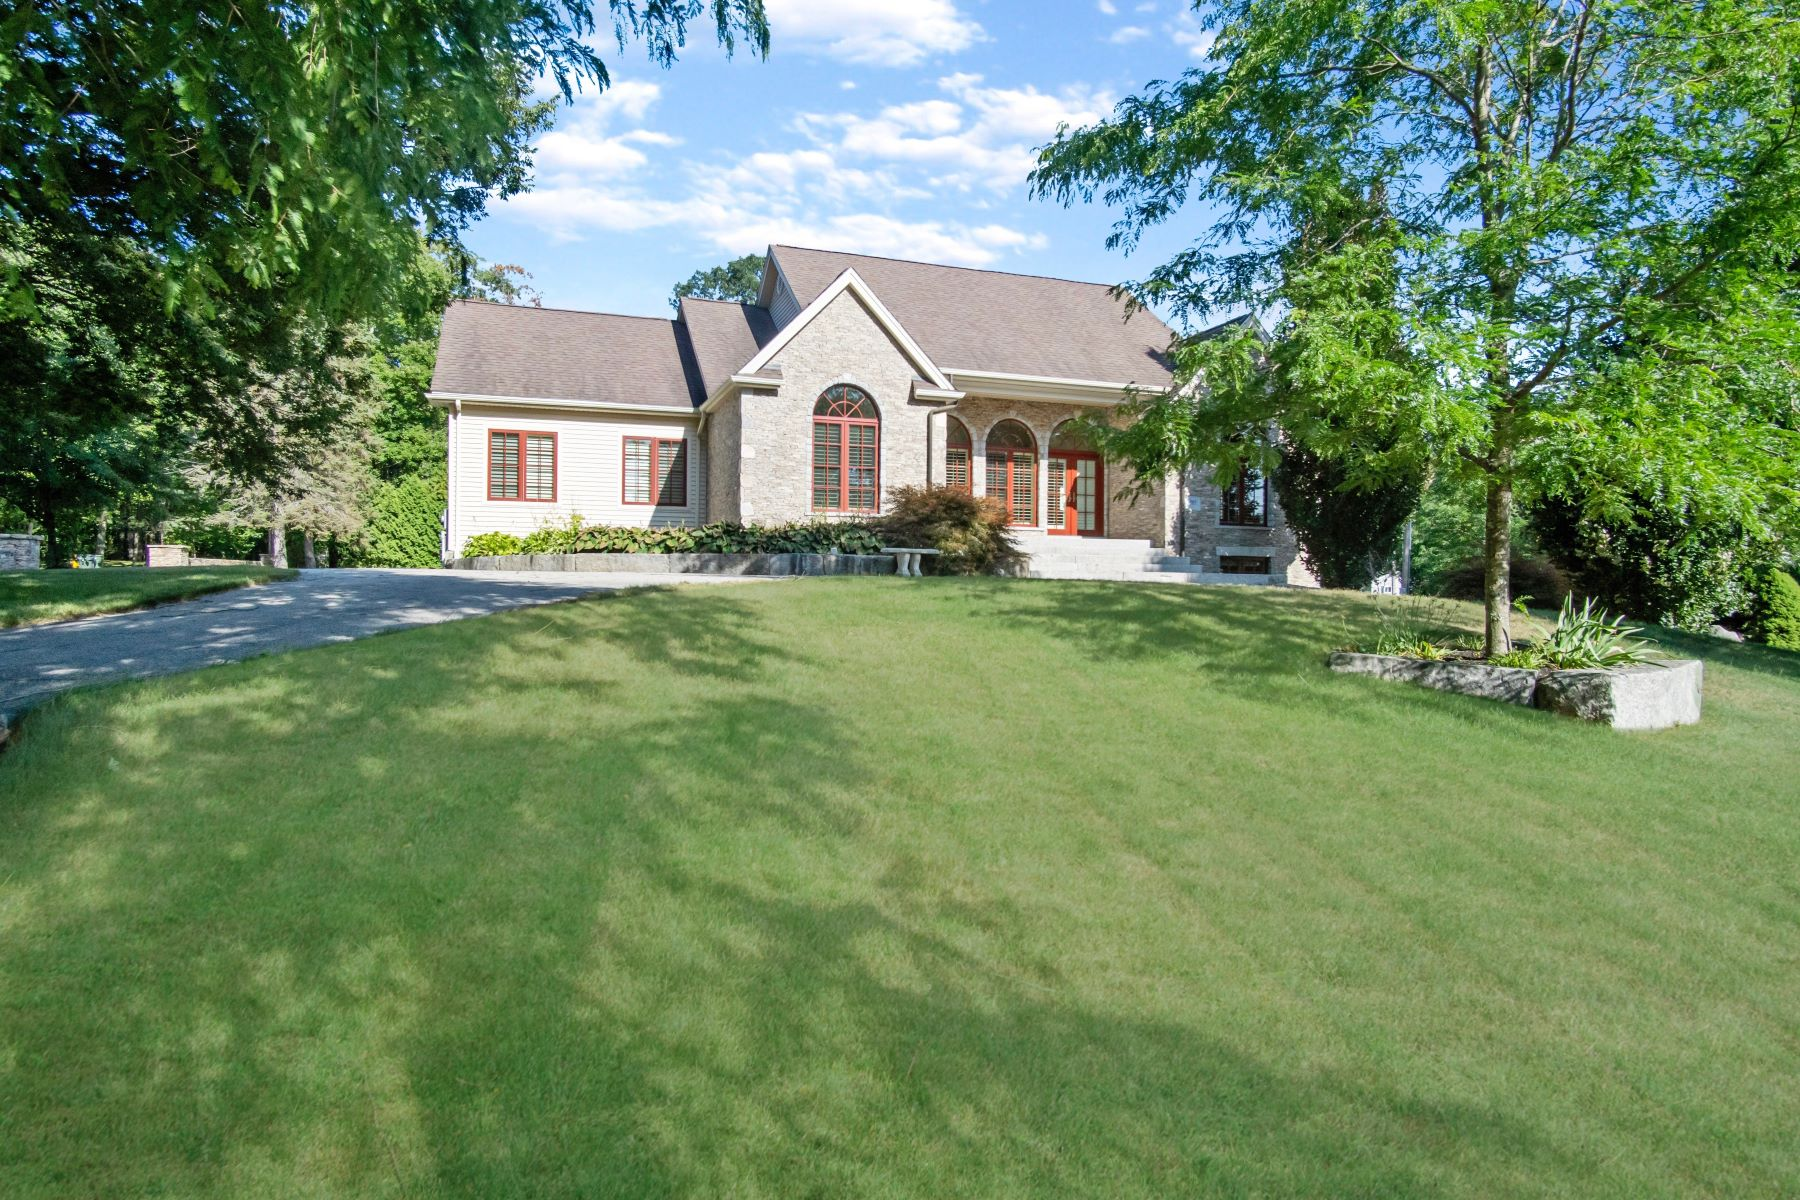 Single Family Homes for Sale at 395 South Shore Rd., Burrillville, RI 395 South Shore Rd. Burrillville, Rhode Island 02859 United States